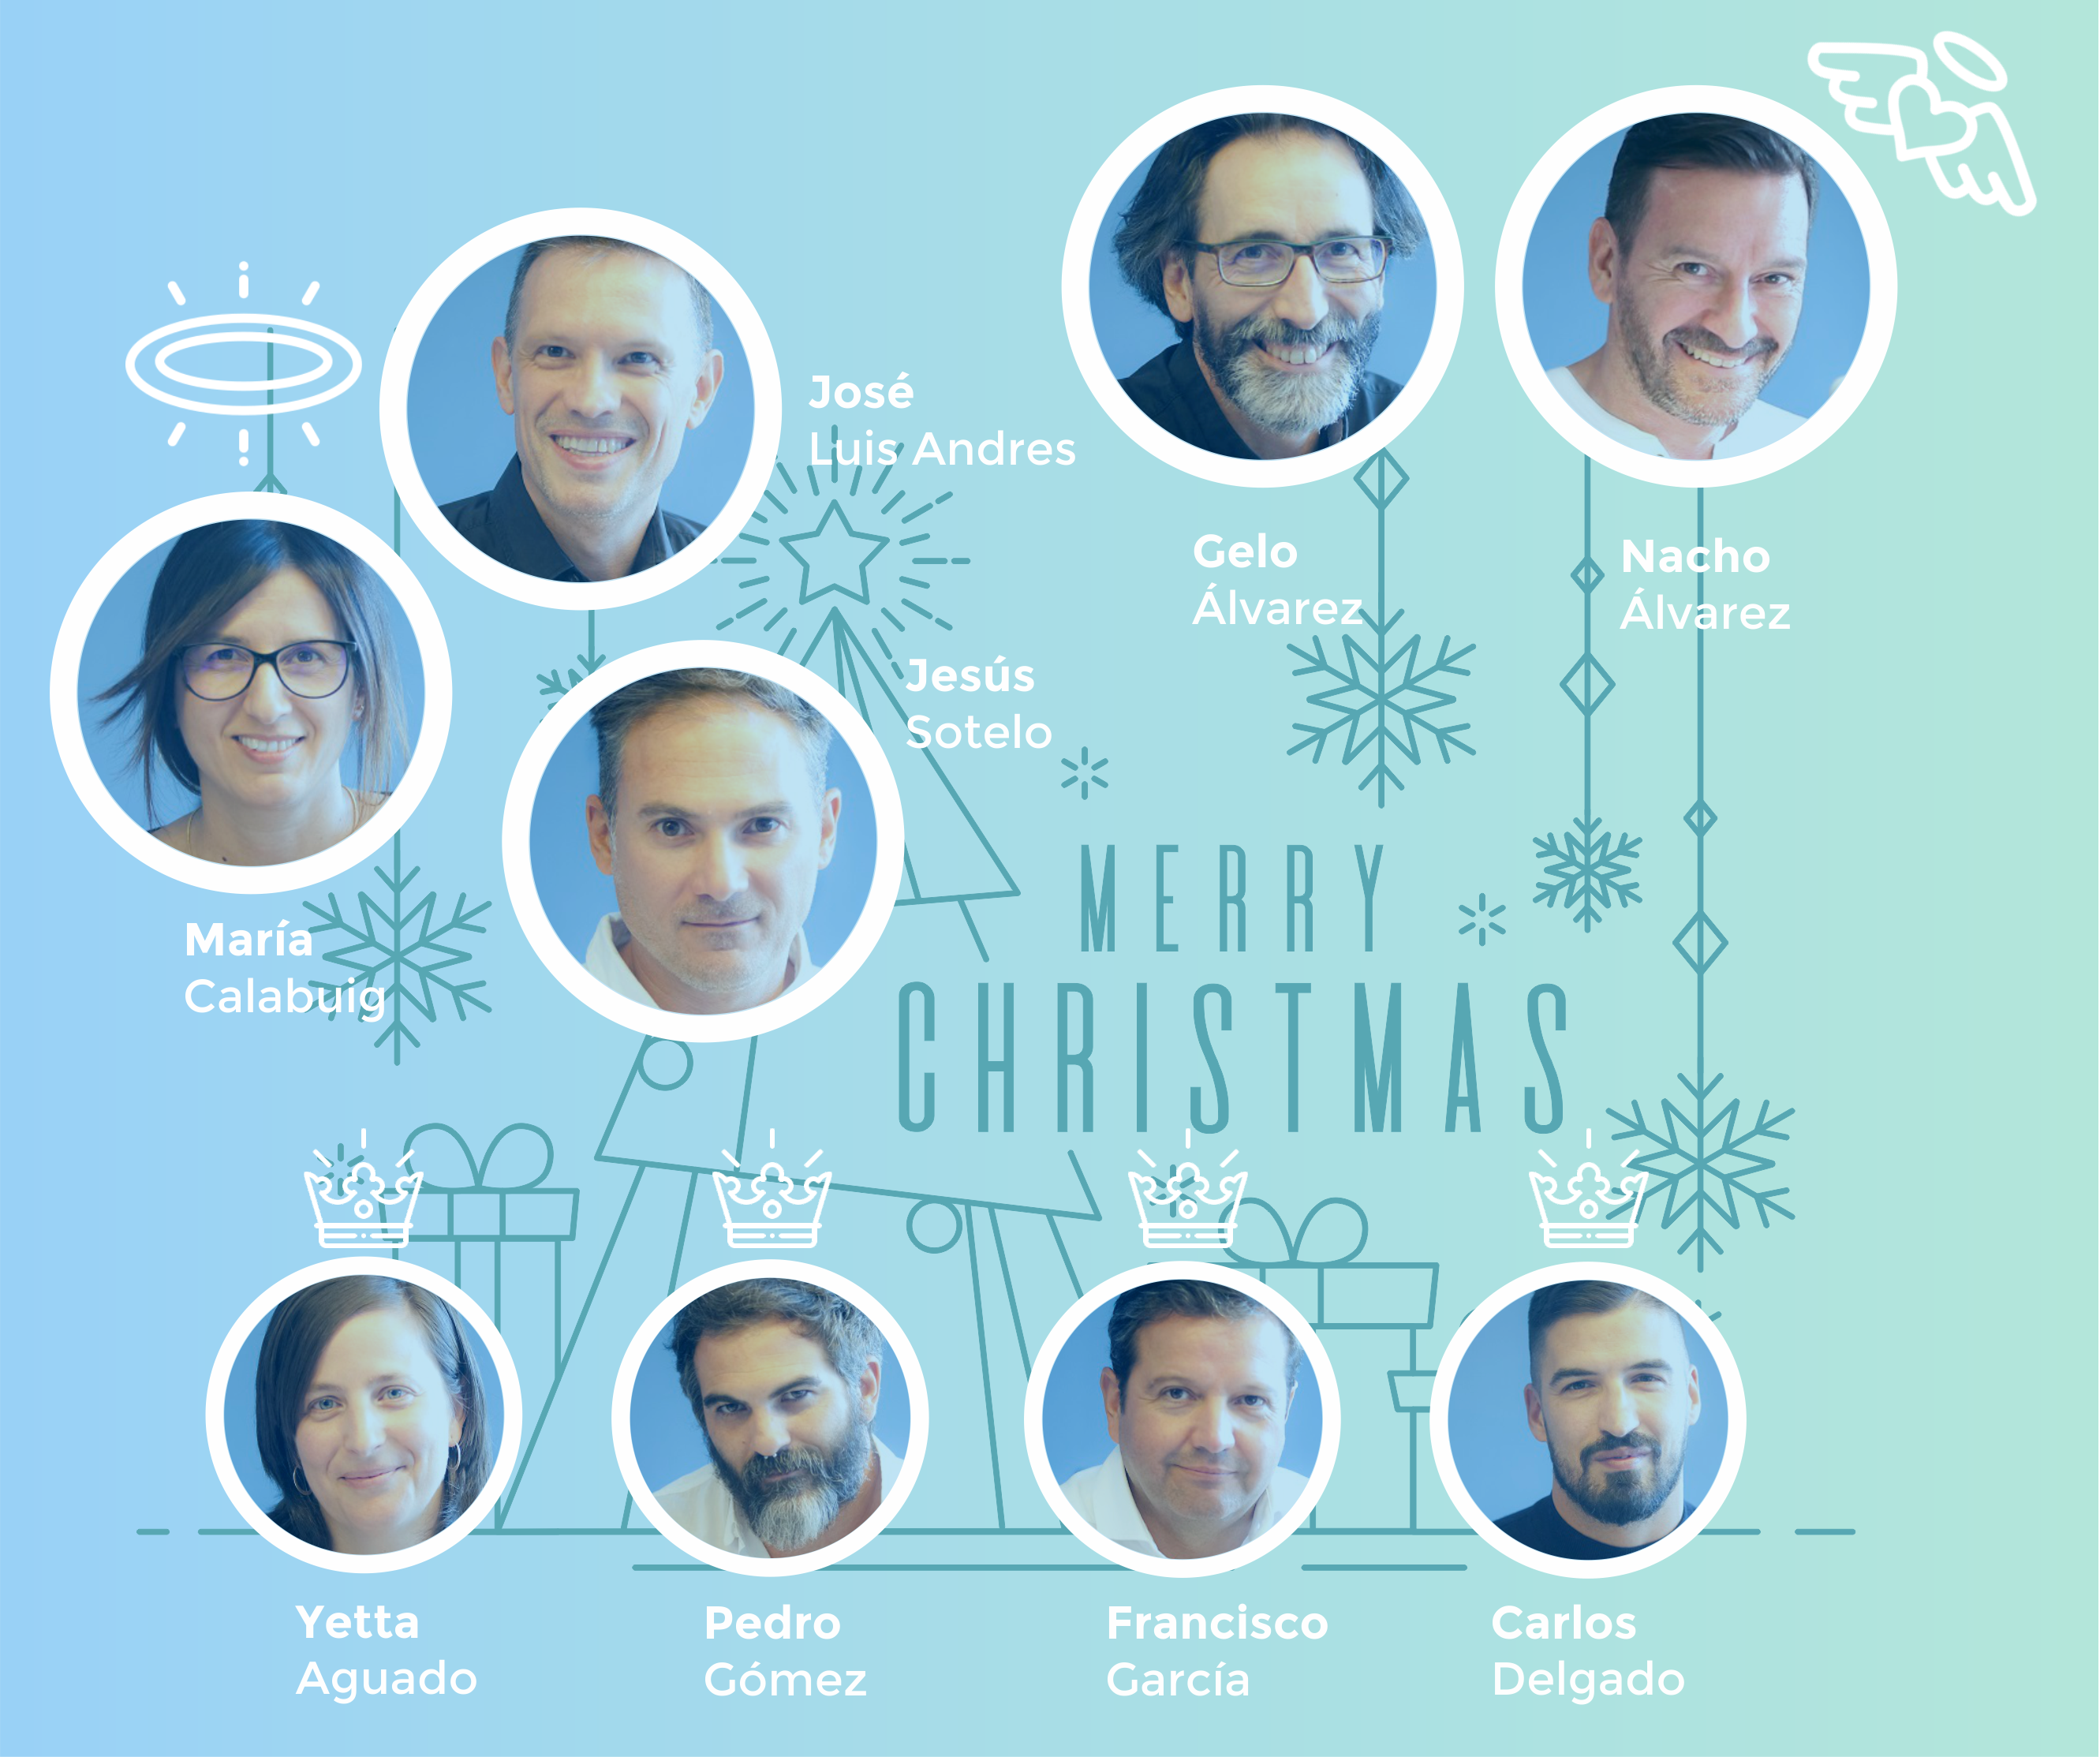 chistmas_mail_2019-20_02